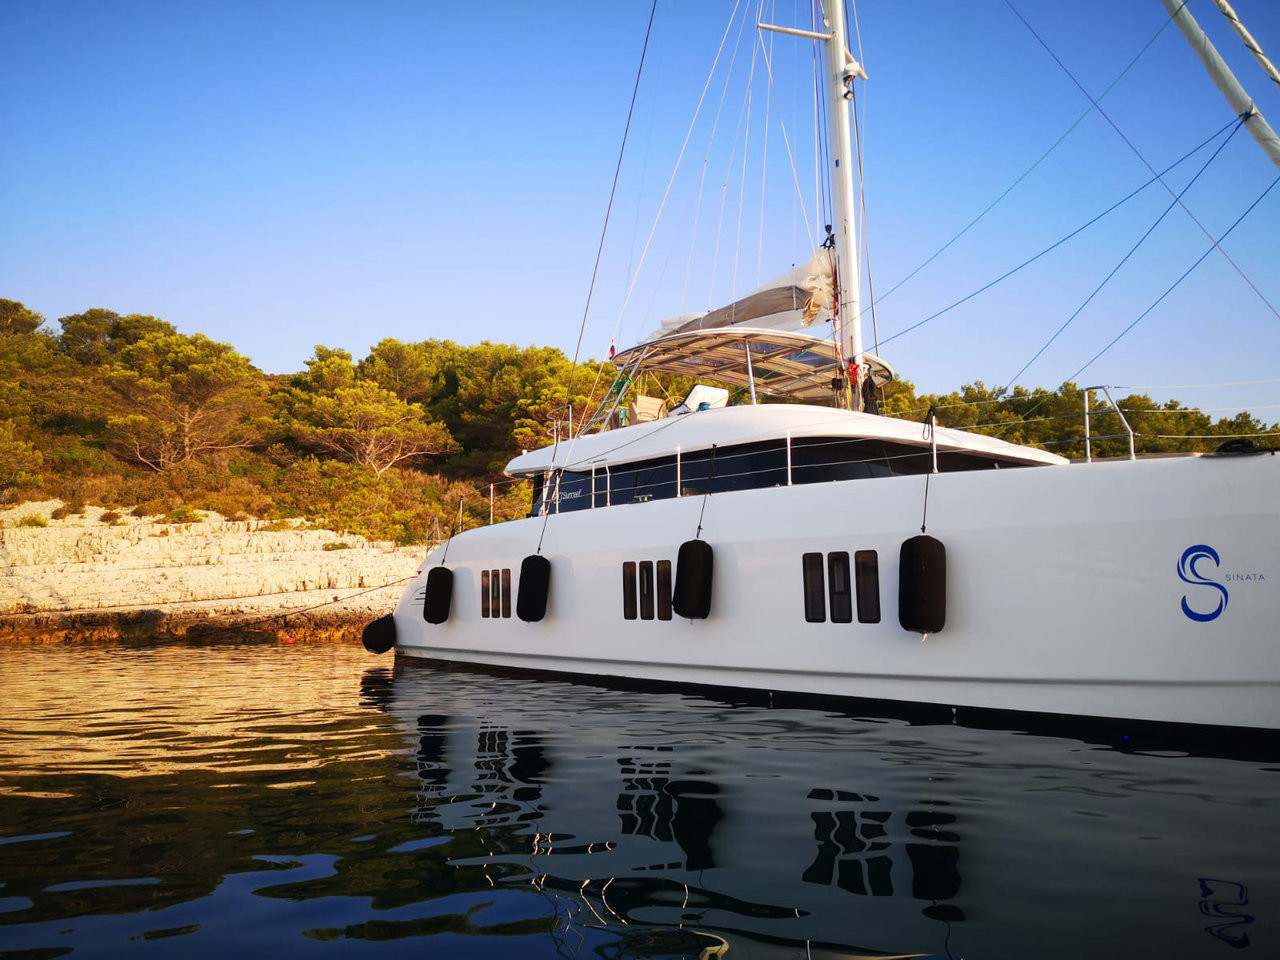 Sunreef 60 SINATA | Catamaran Charter Croatia